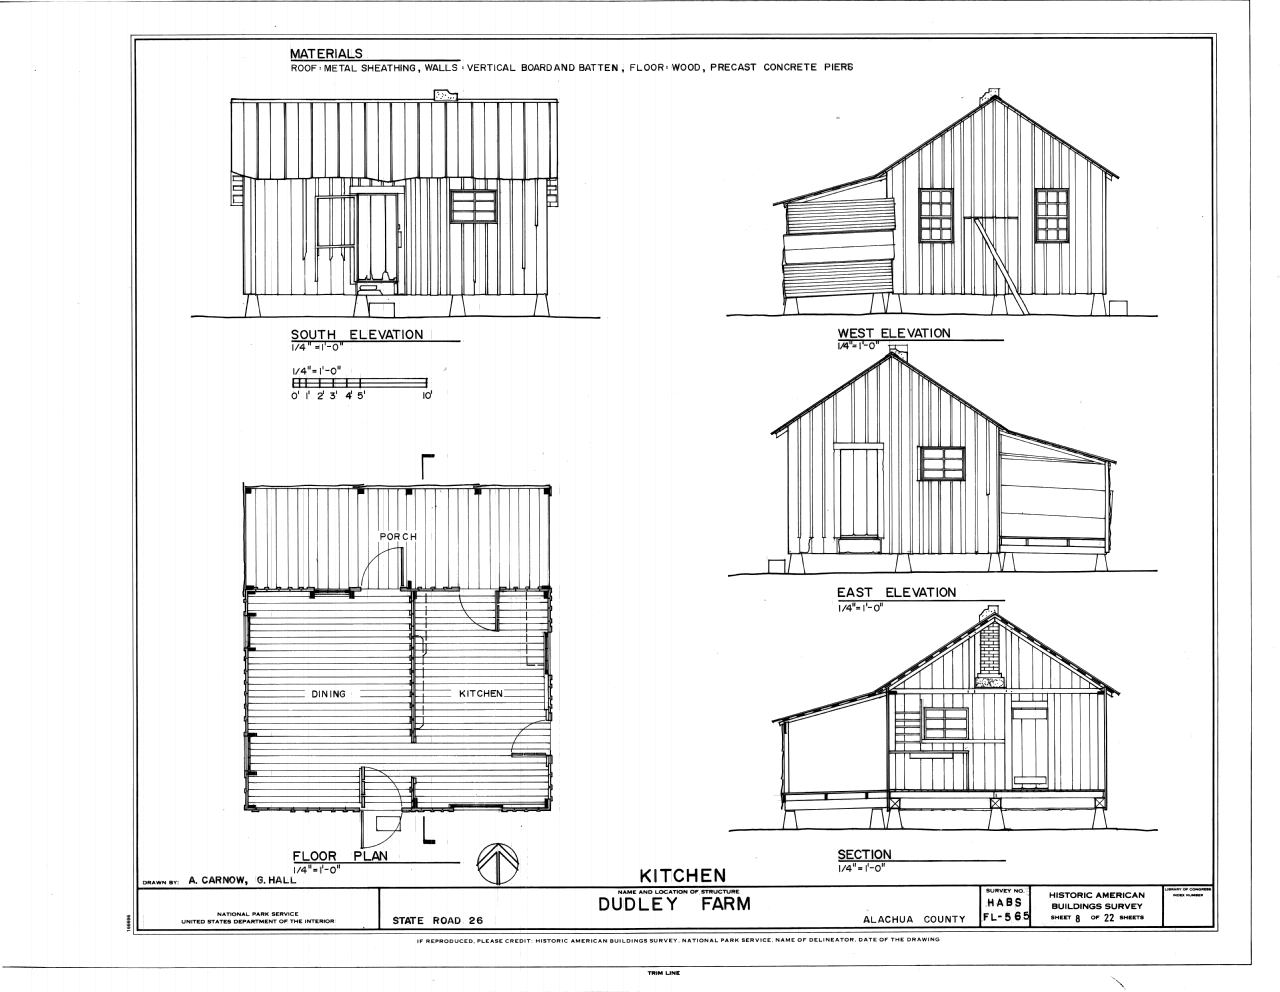 House elevation drawings joy studio design gallery House plan and elevation drawings